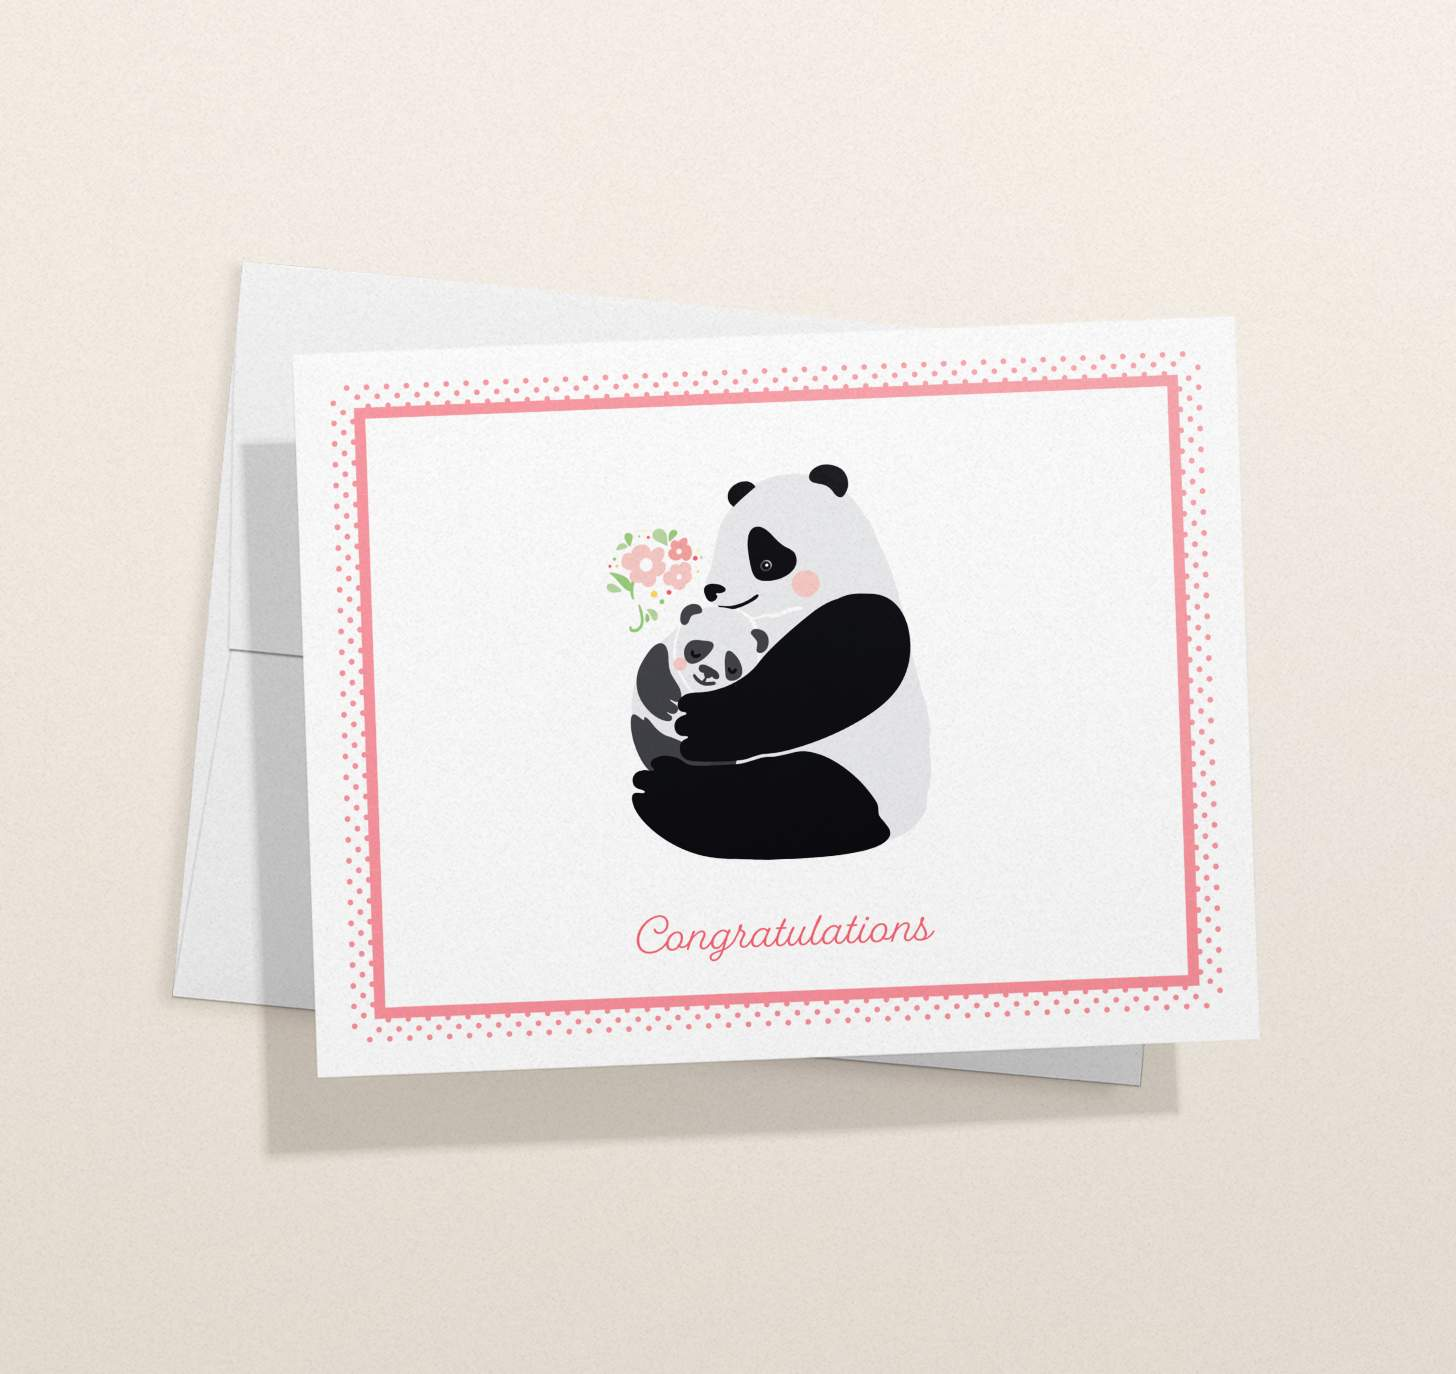 Mother and baby panda design with envelope